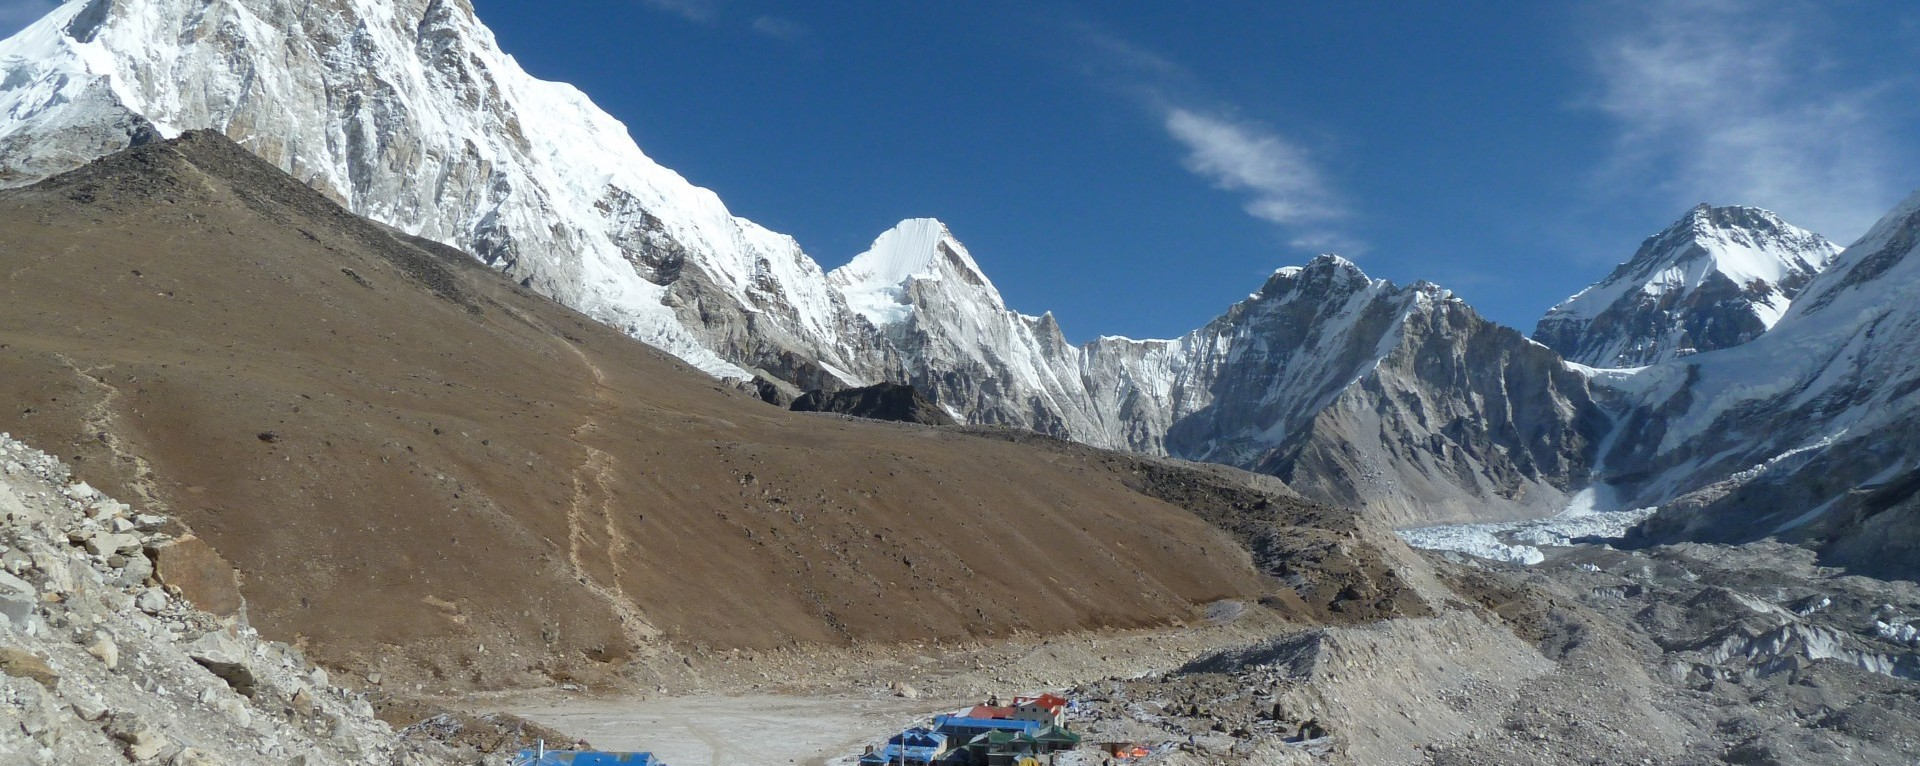 The view of Kalapatthar, Pumori and Everests Base camp from near Gorakshep